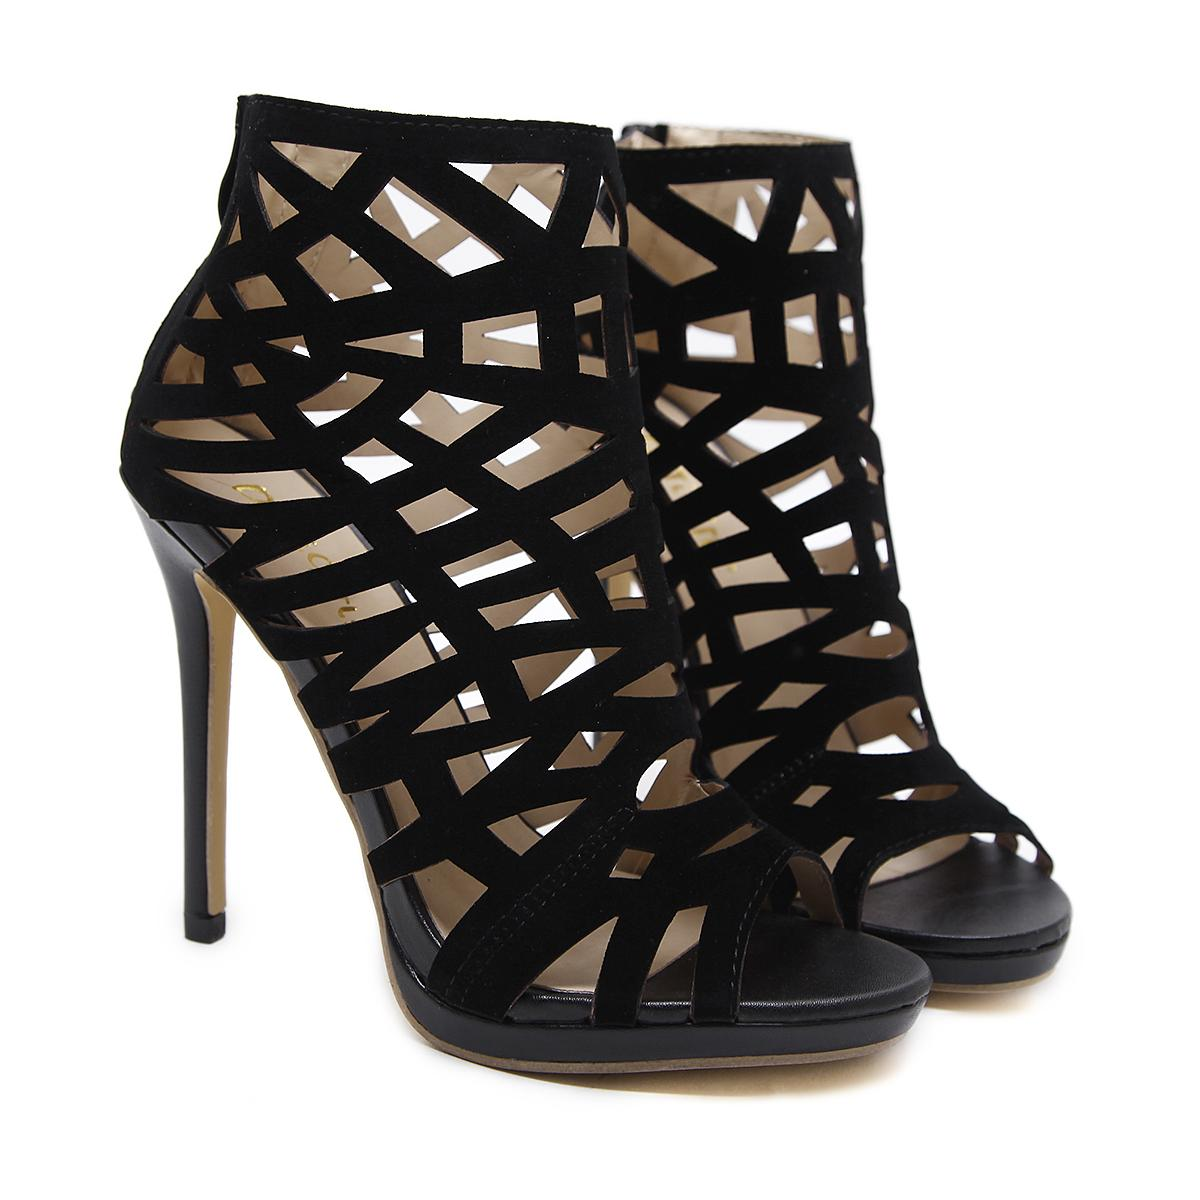 New open toe shoes for women elegant thin high heels fashion Cut-Outs boots super heels fashion boots Plus Size pairs style martin boots